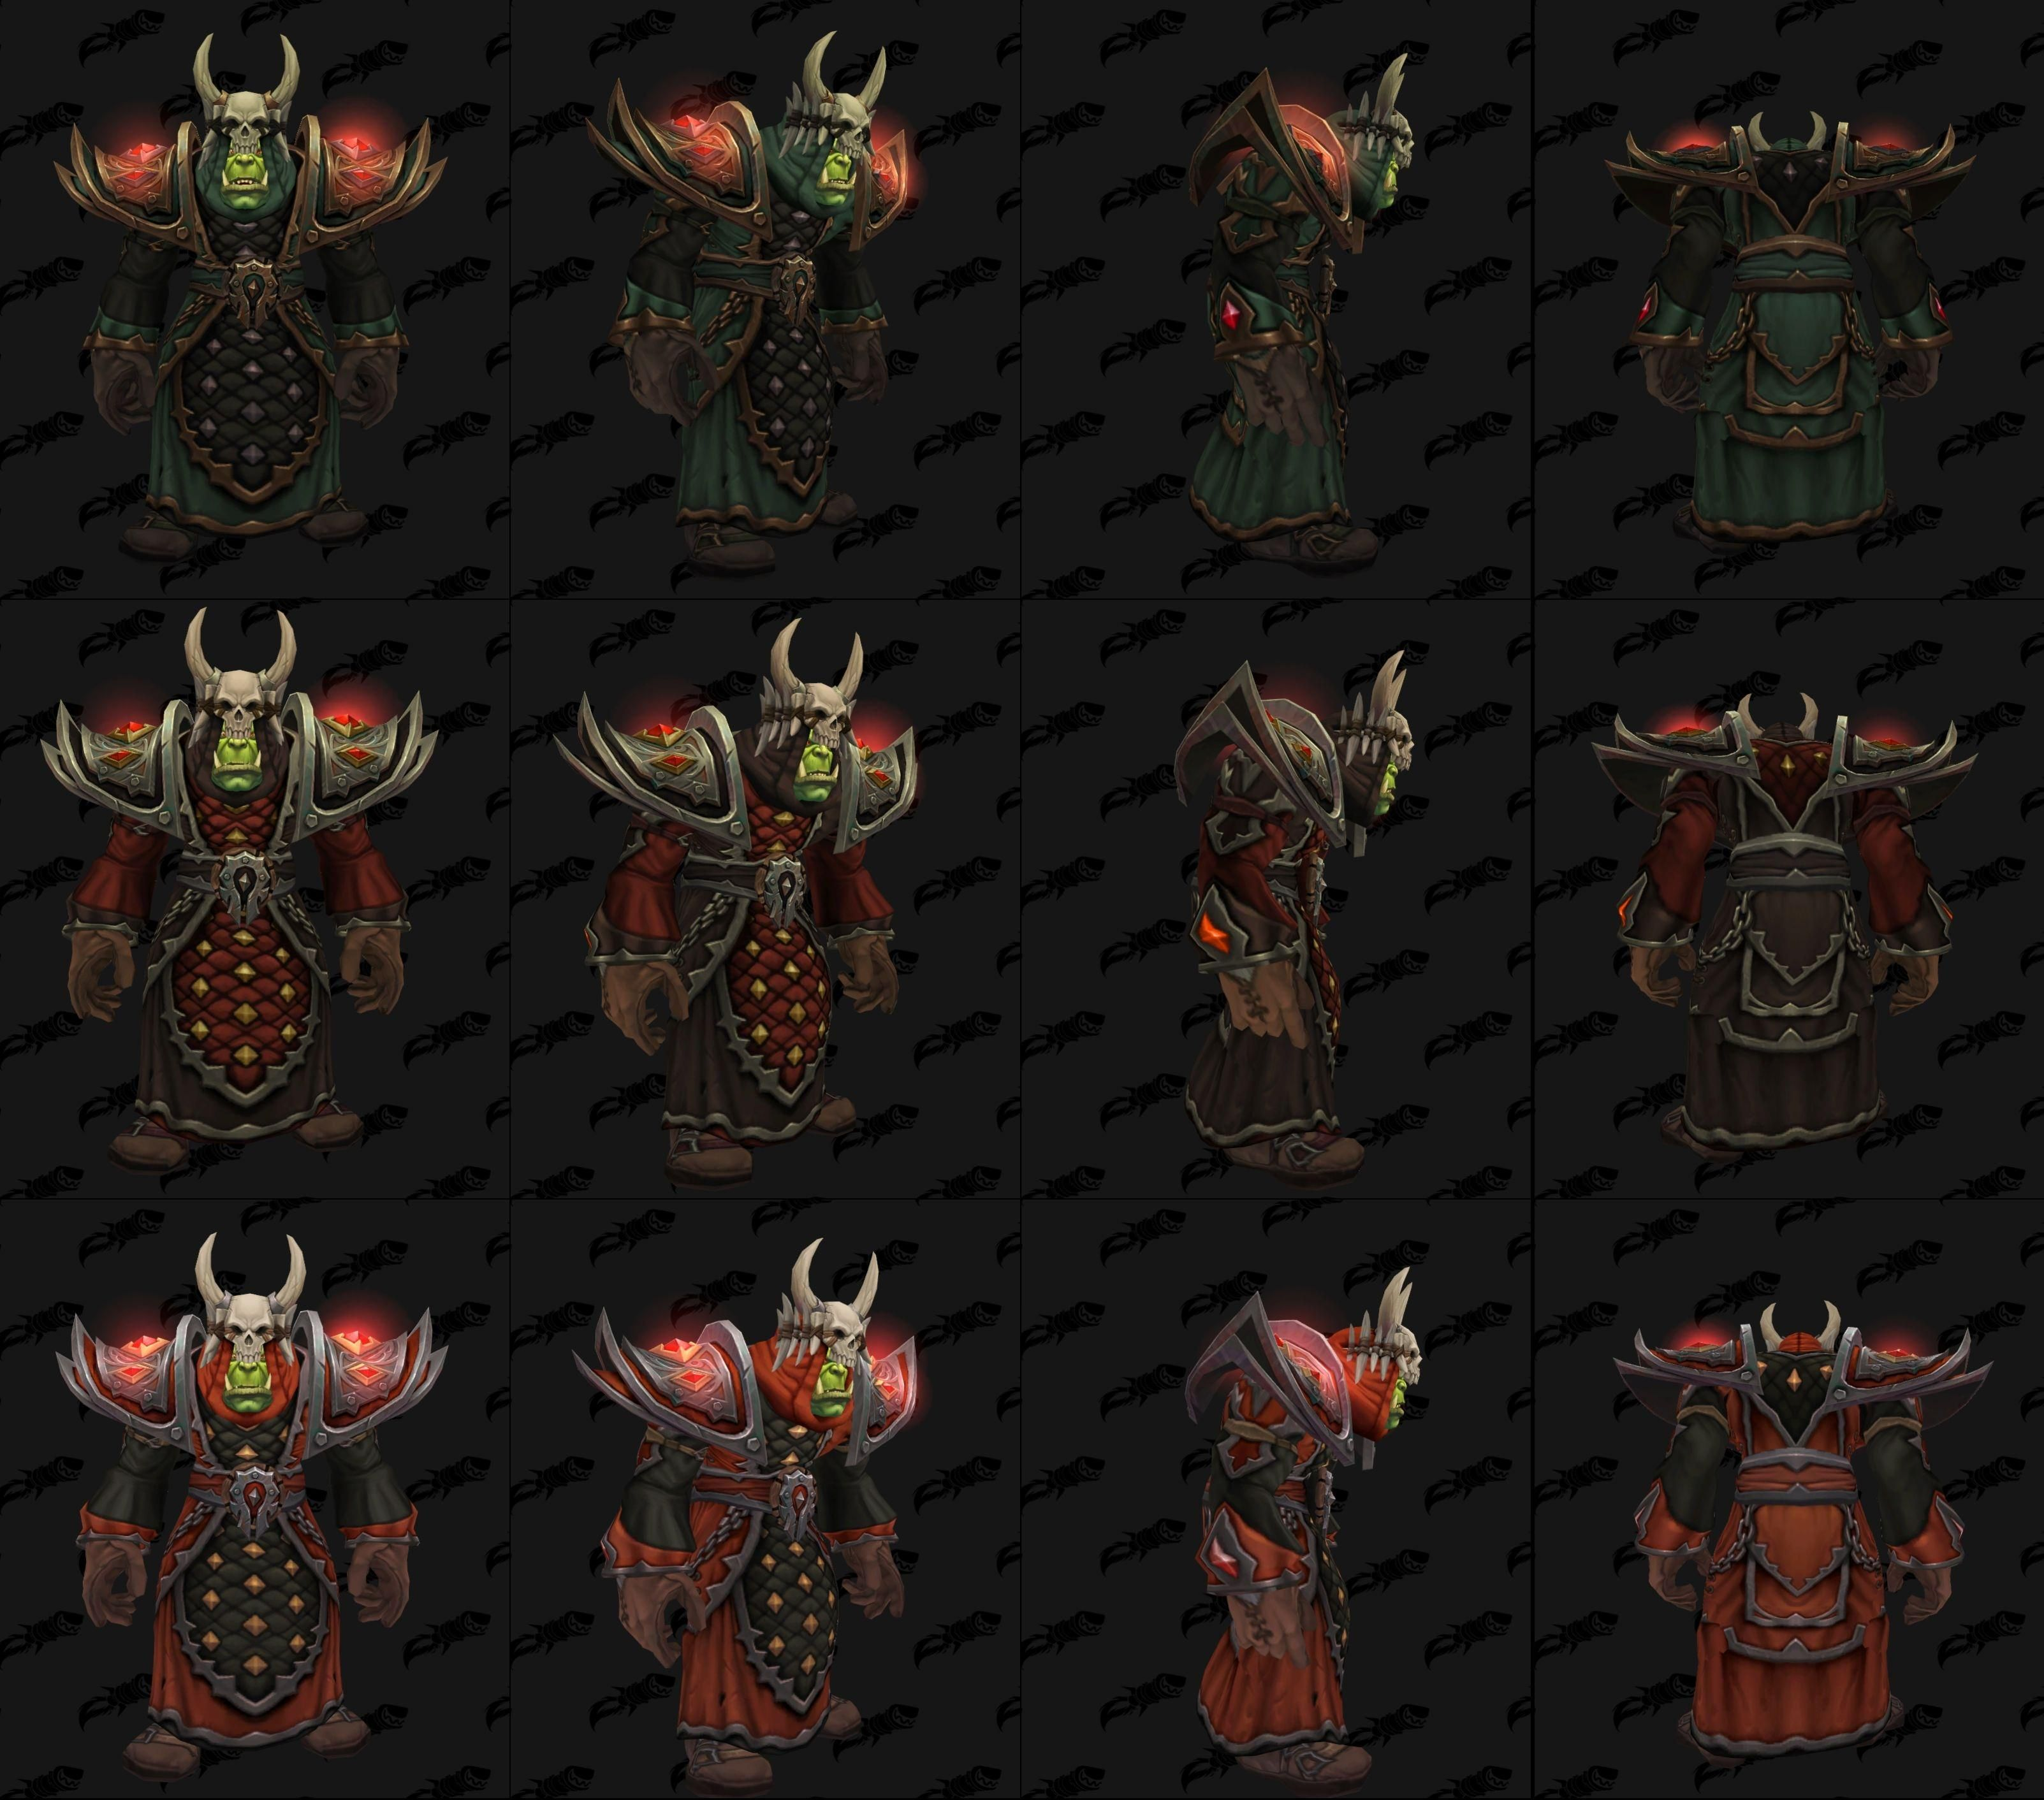 BfA\u0027s Horde cloth warfront armor is a major callback to the Vanilla\u0027s Warlord and High Warlord & BfA\u0027s Horde cloth warfront armor is a major callback to the ...